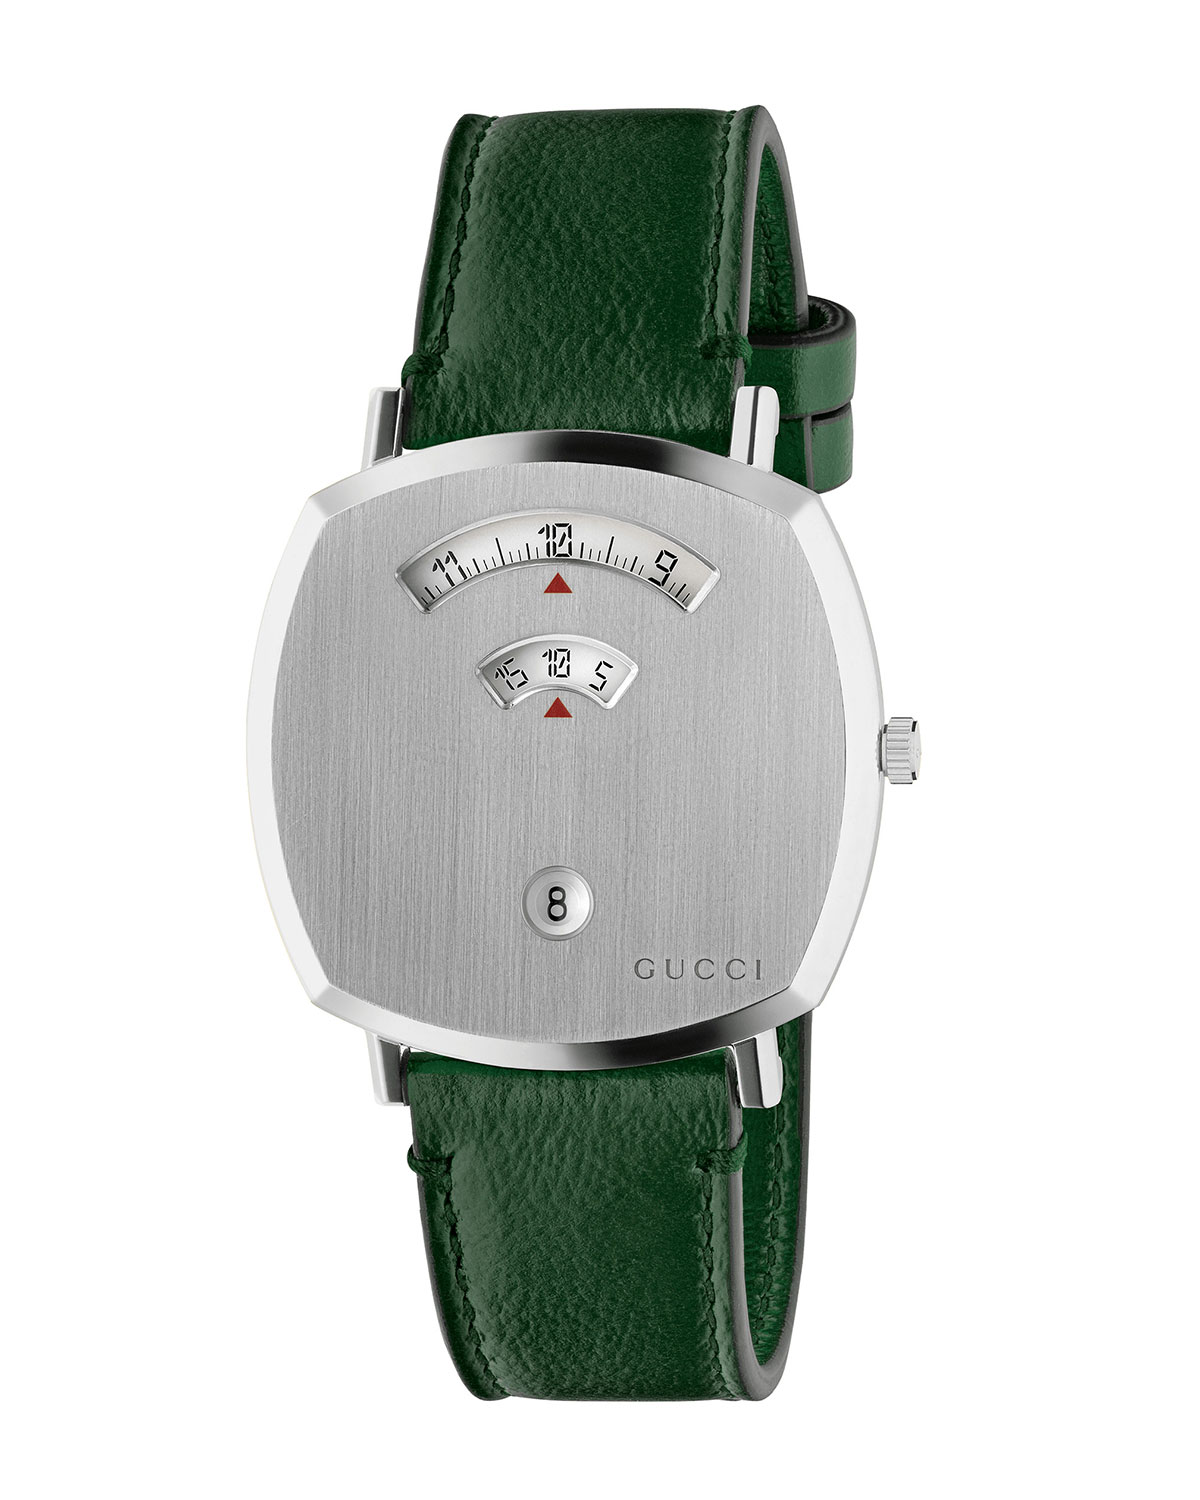 Grip Square 3-Window Watch with Leather Strap